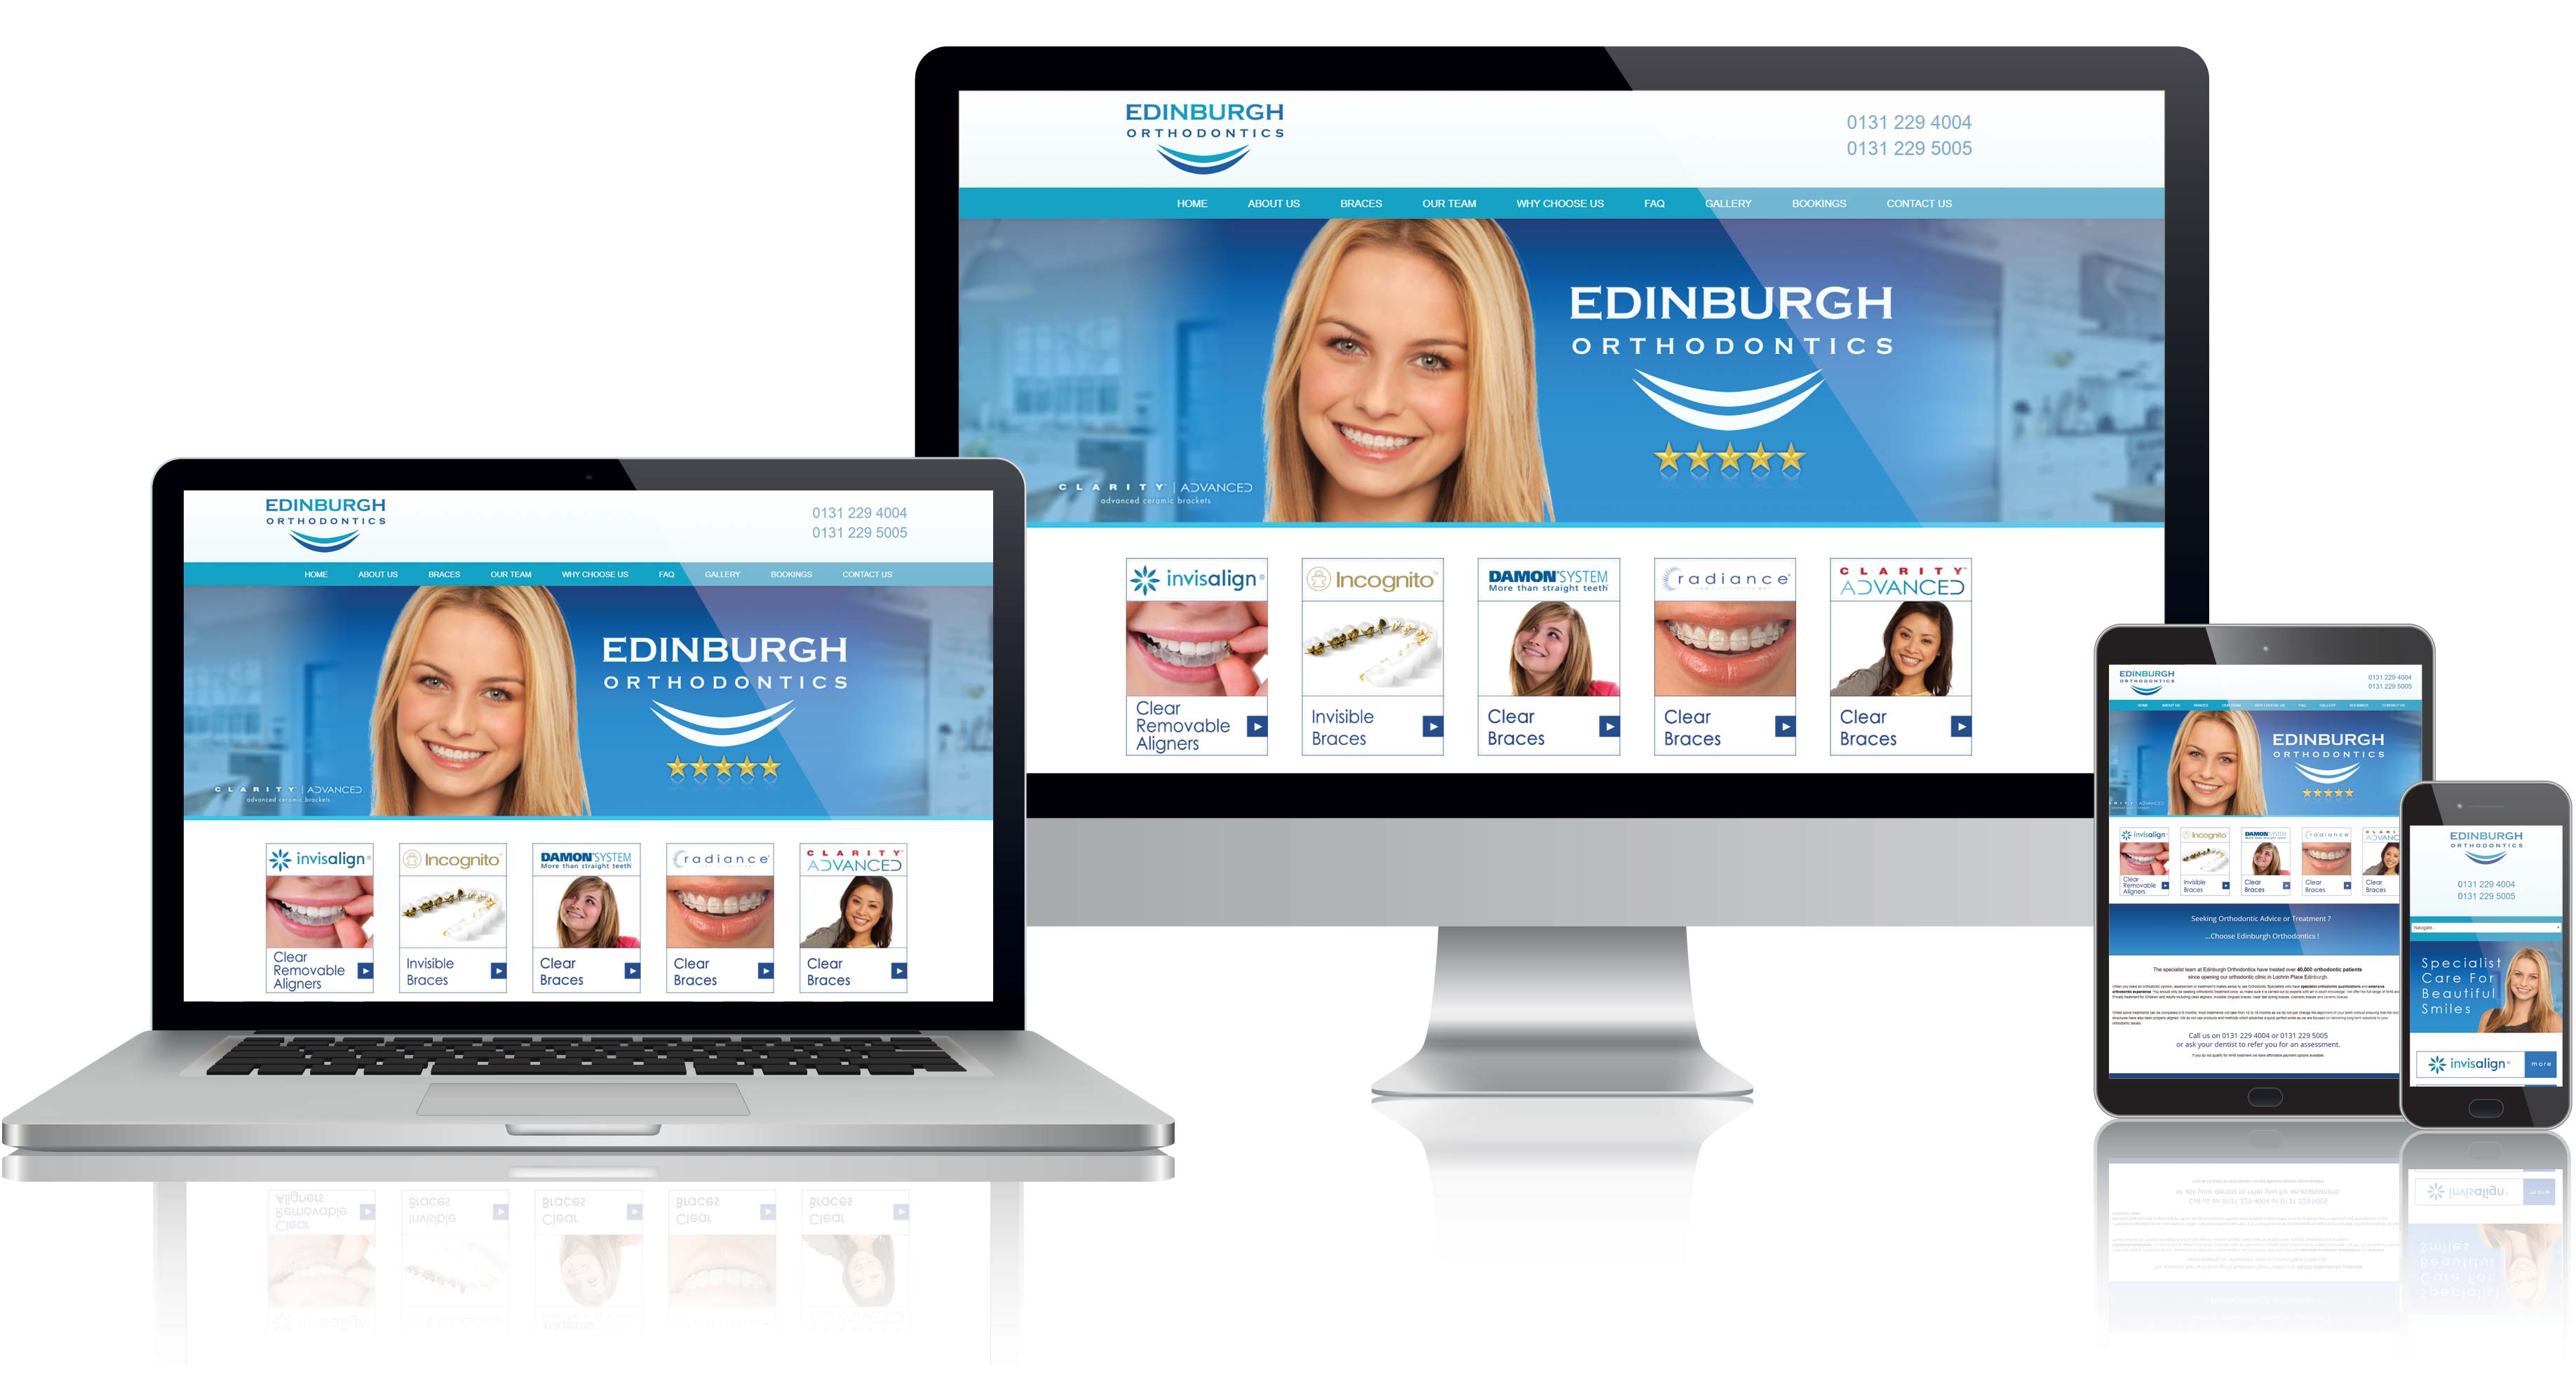 Website Design for Edinburgh Orthodontics